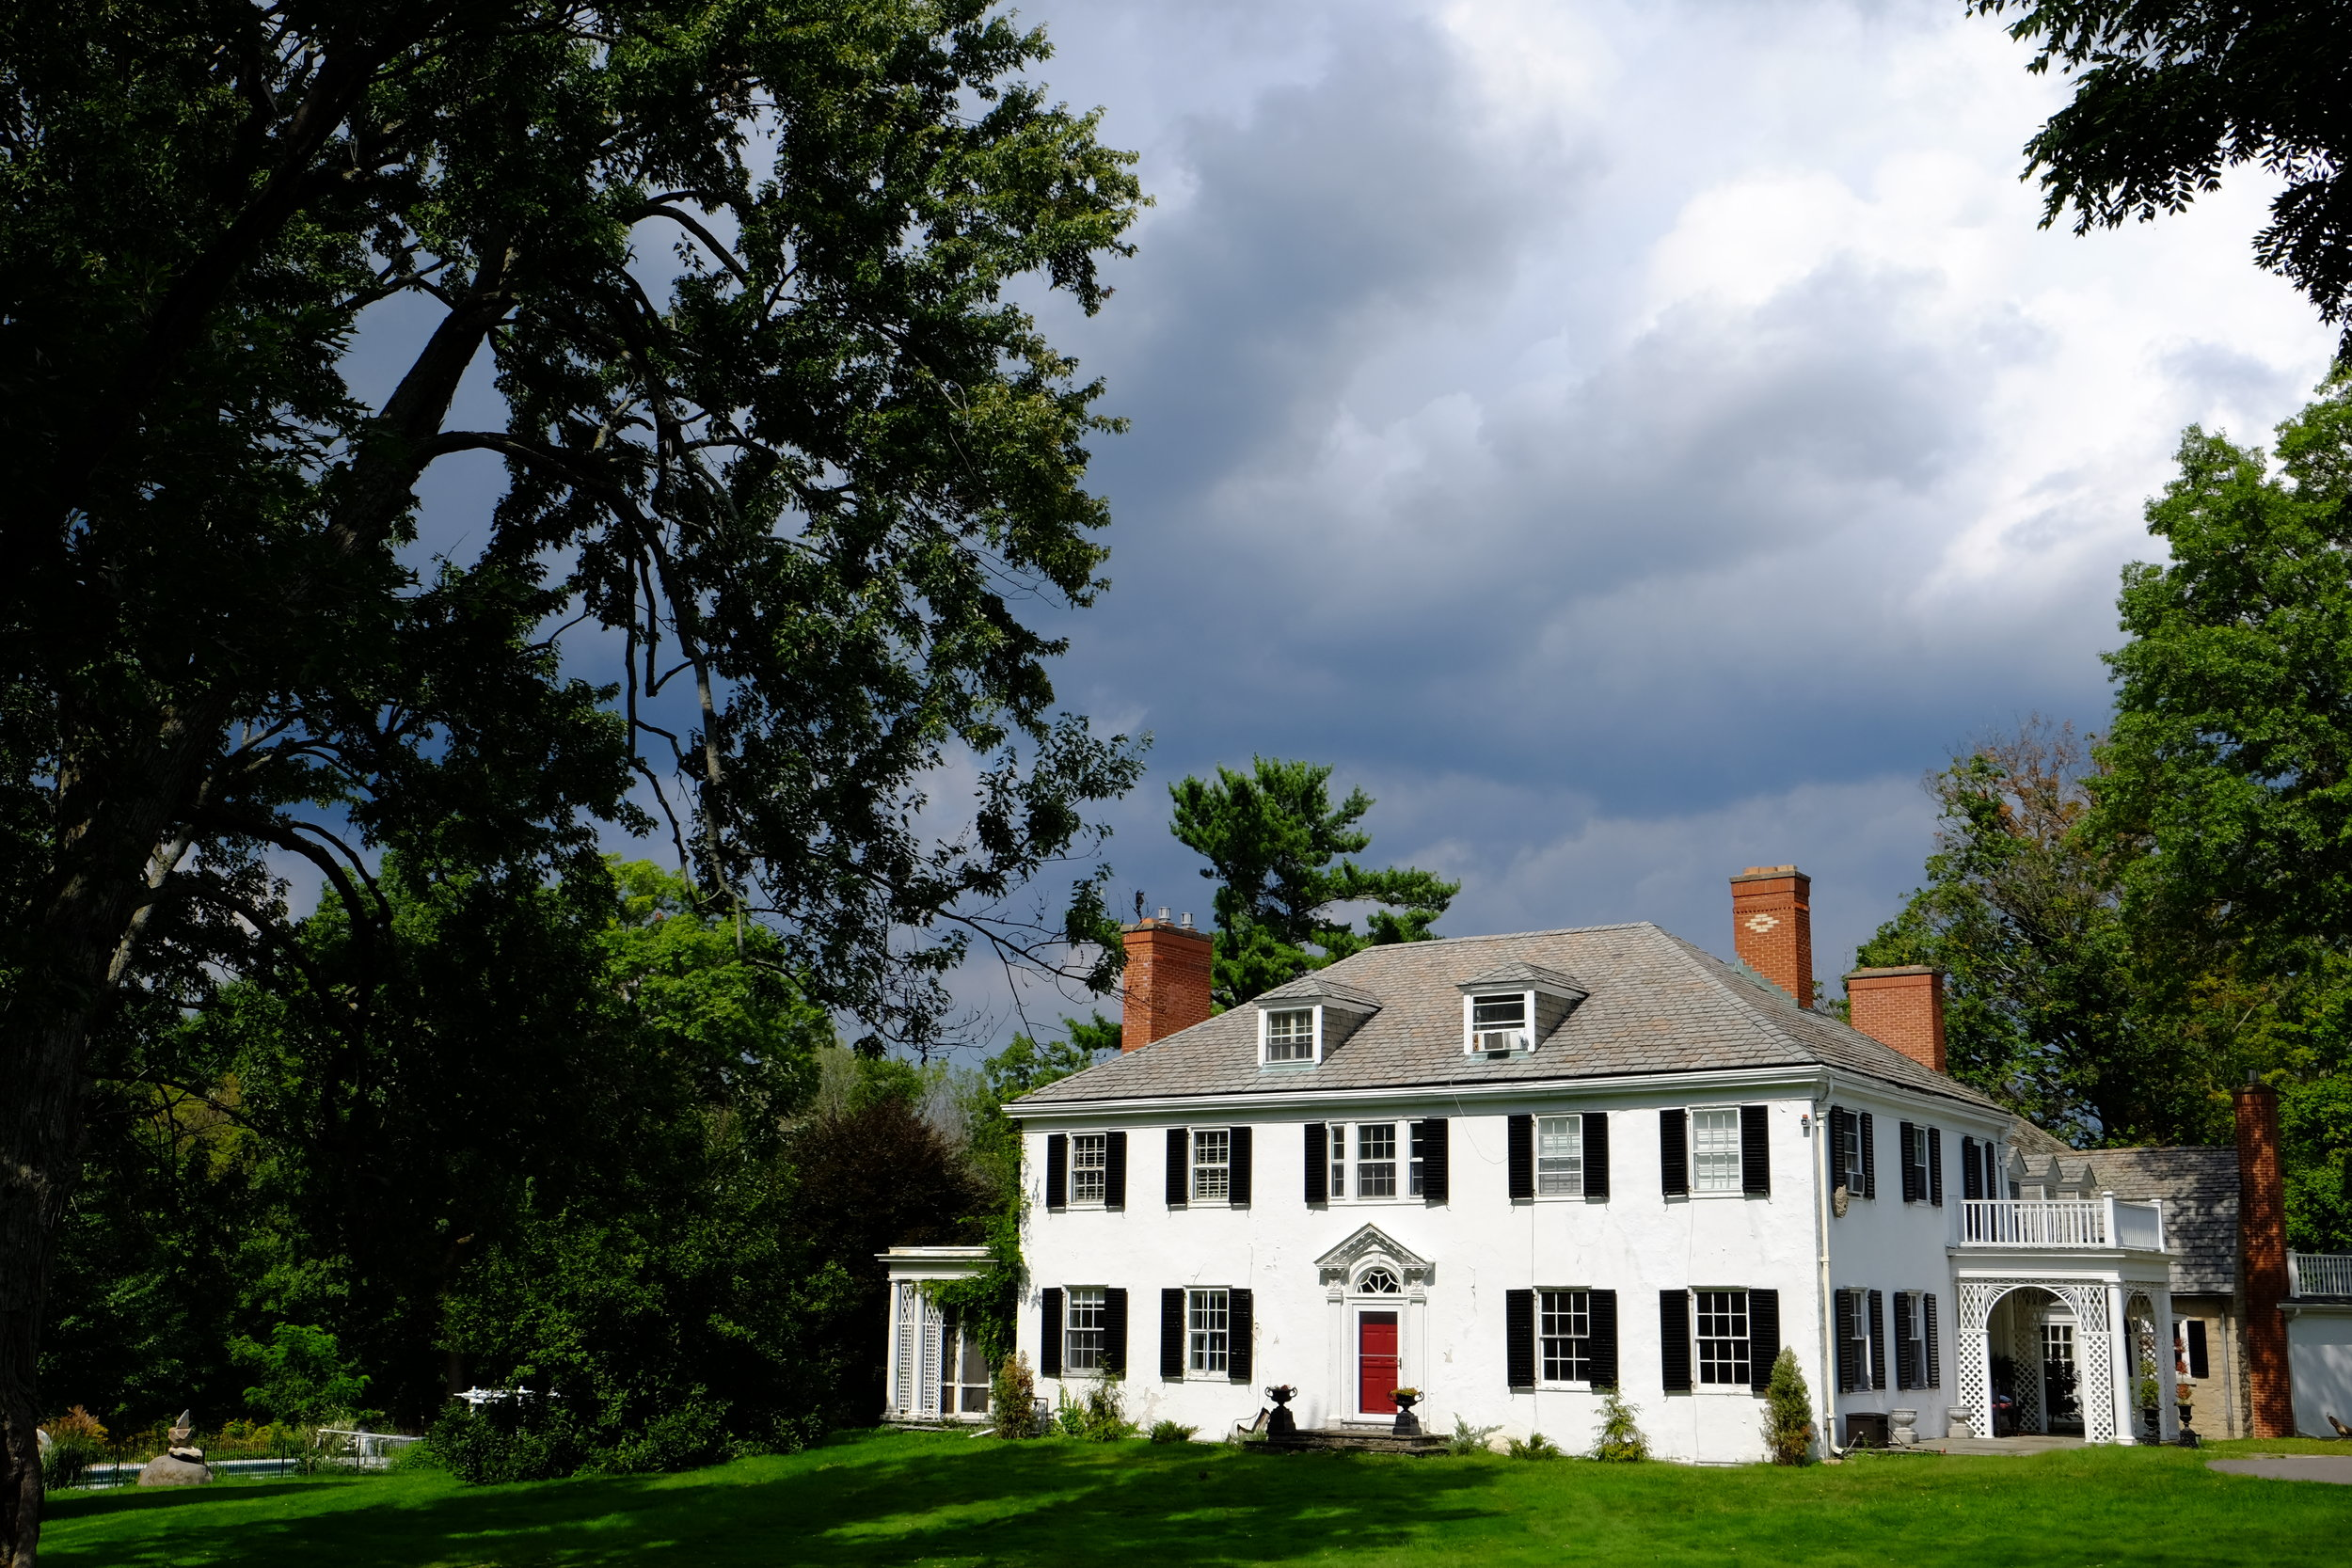 The Mansion at Twin Elms